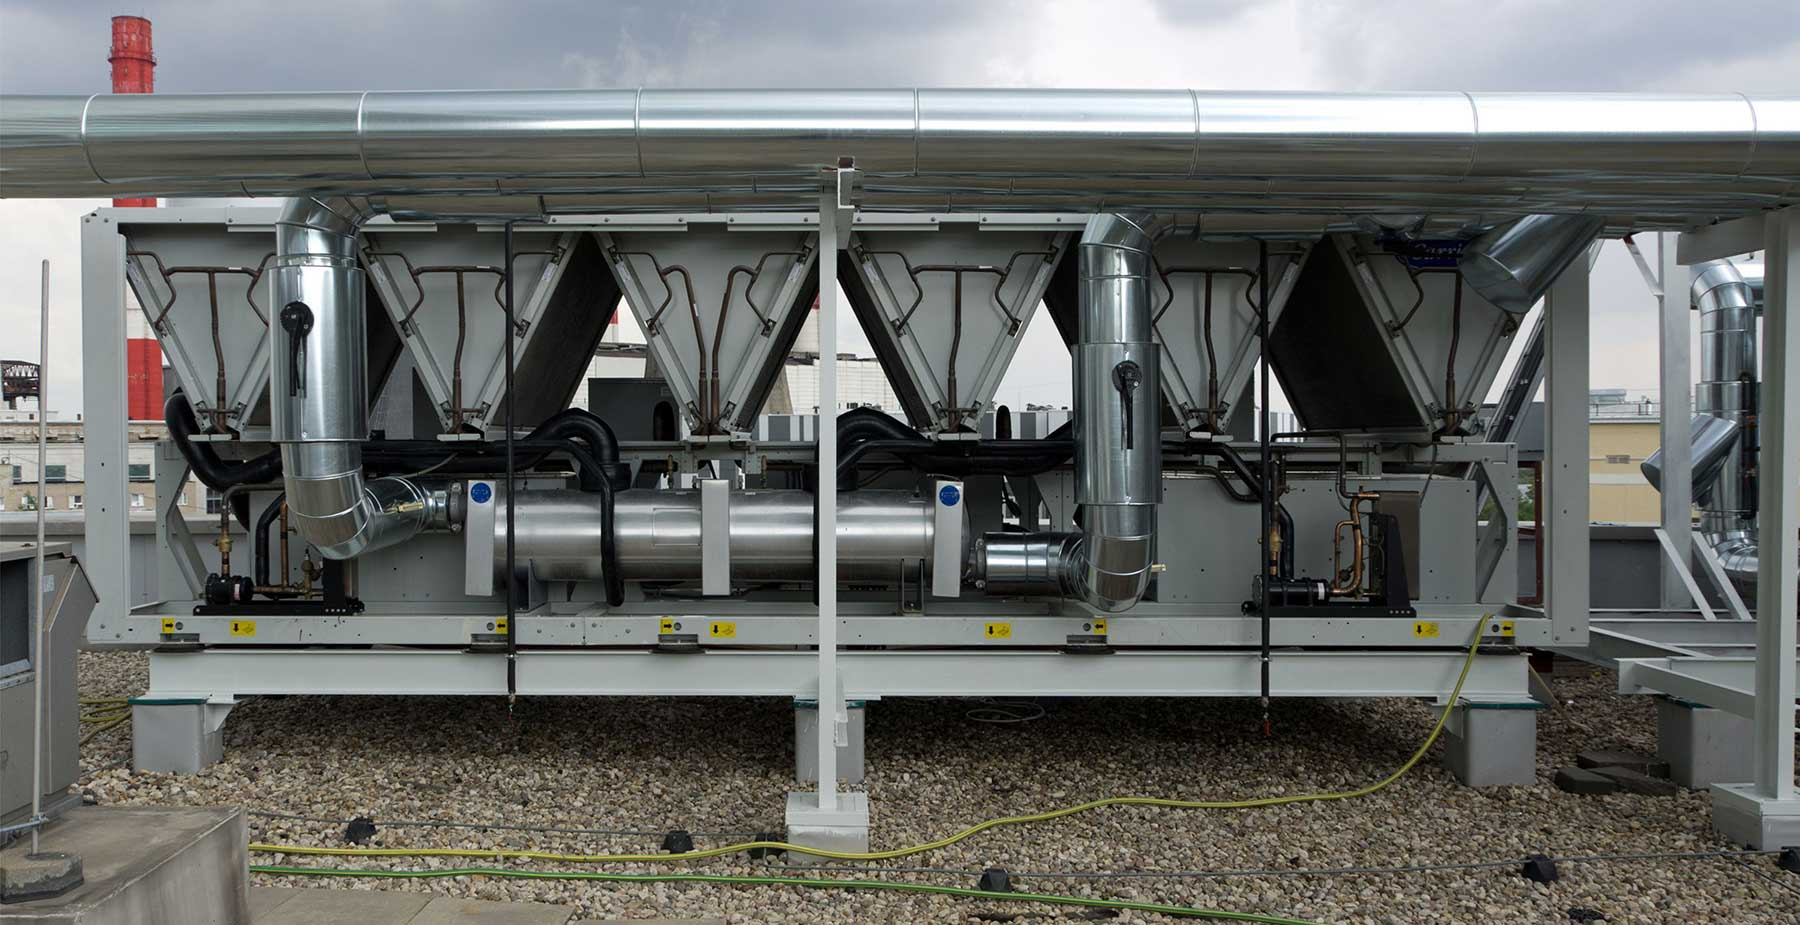 RCS-Air - Water Chiller Trial with R22, ISCEON®, MO29 and ISCEON®